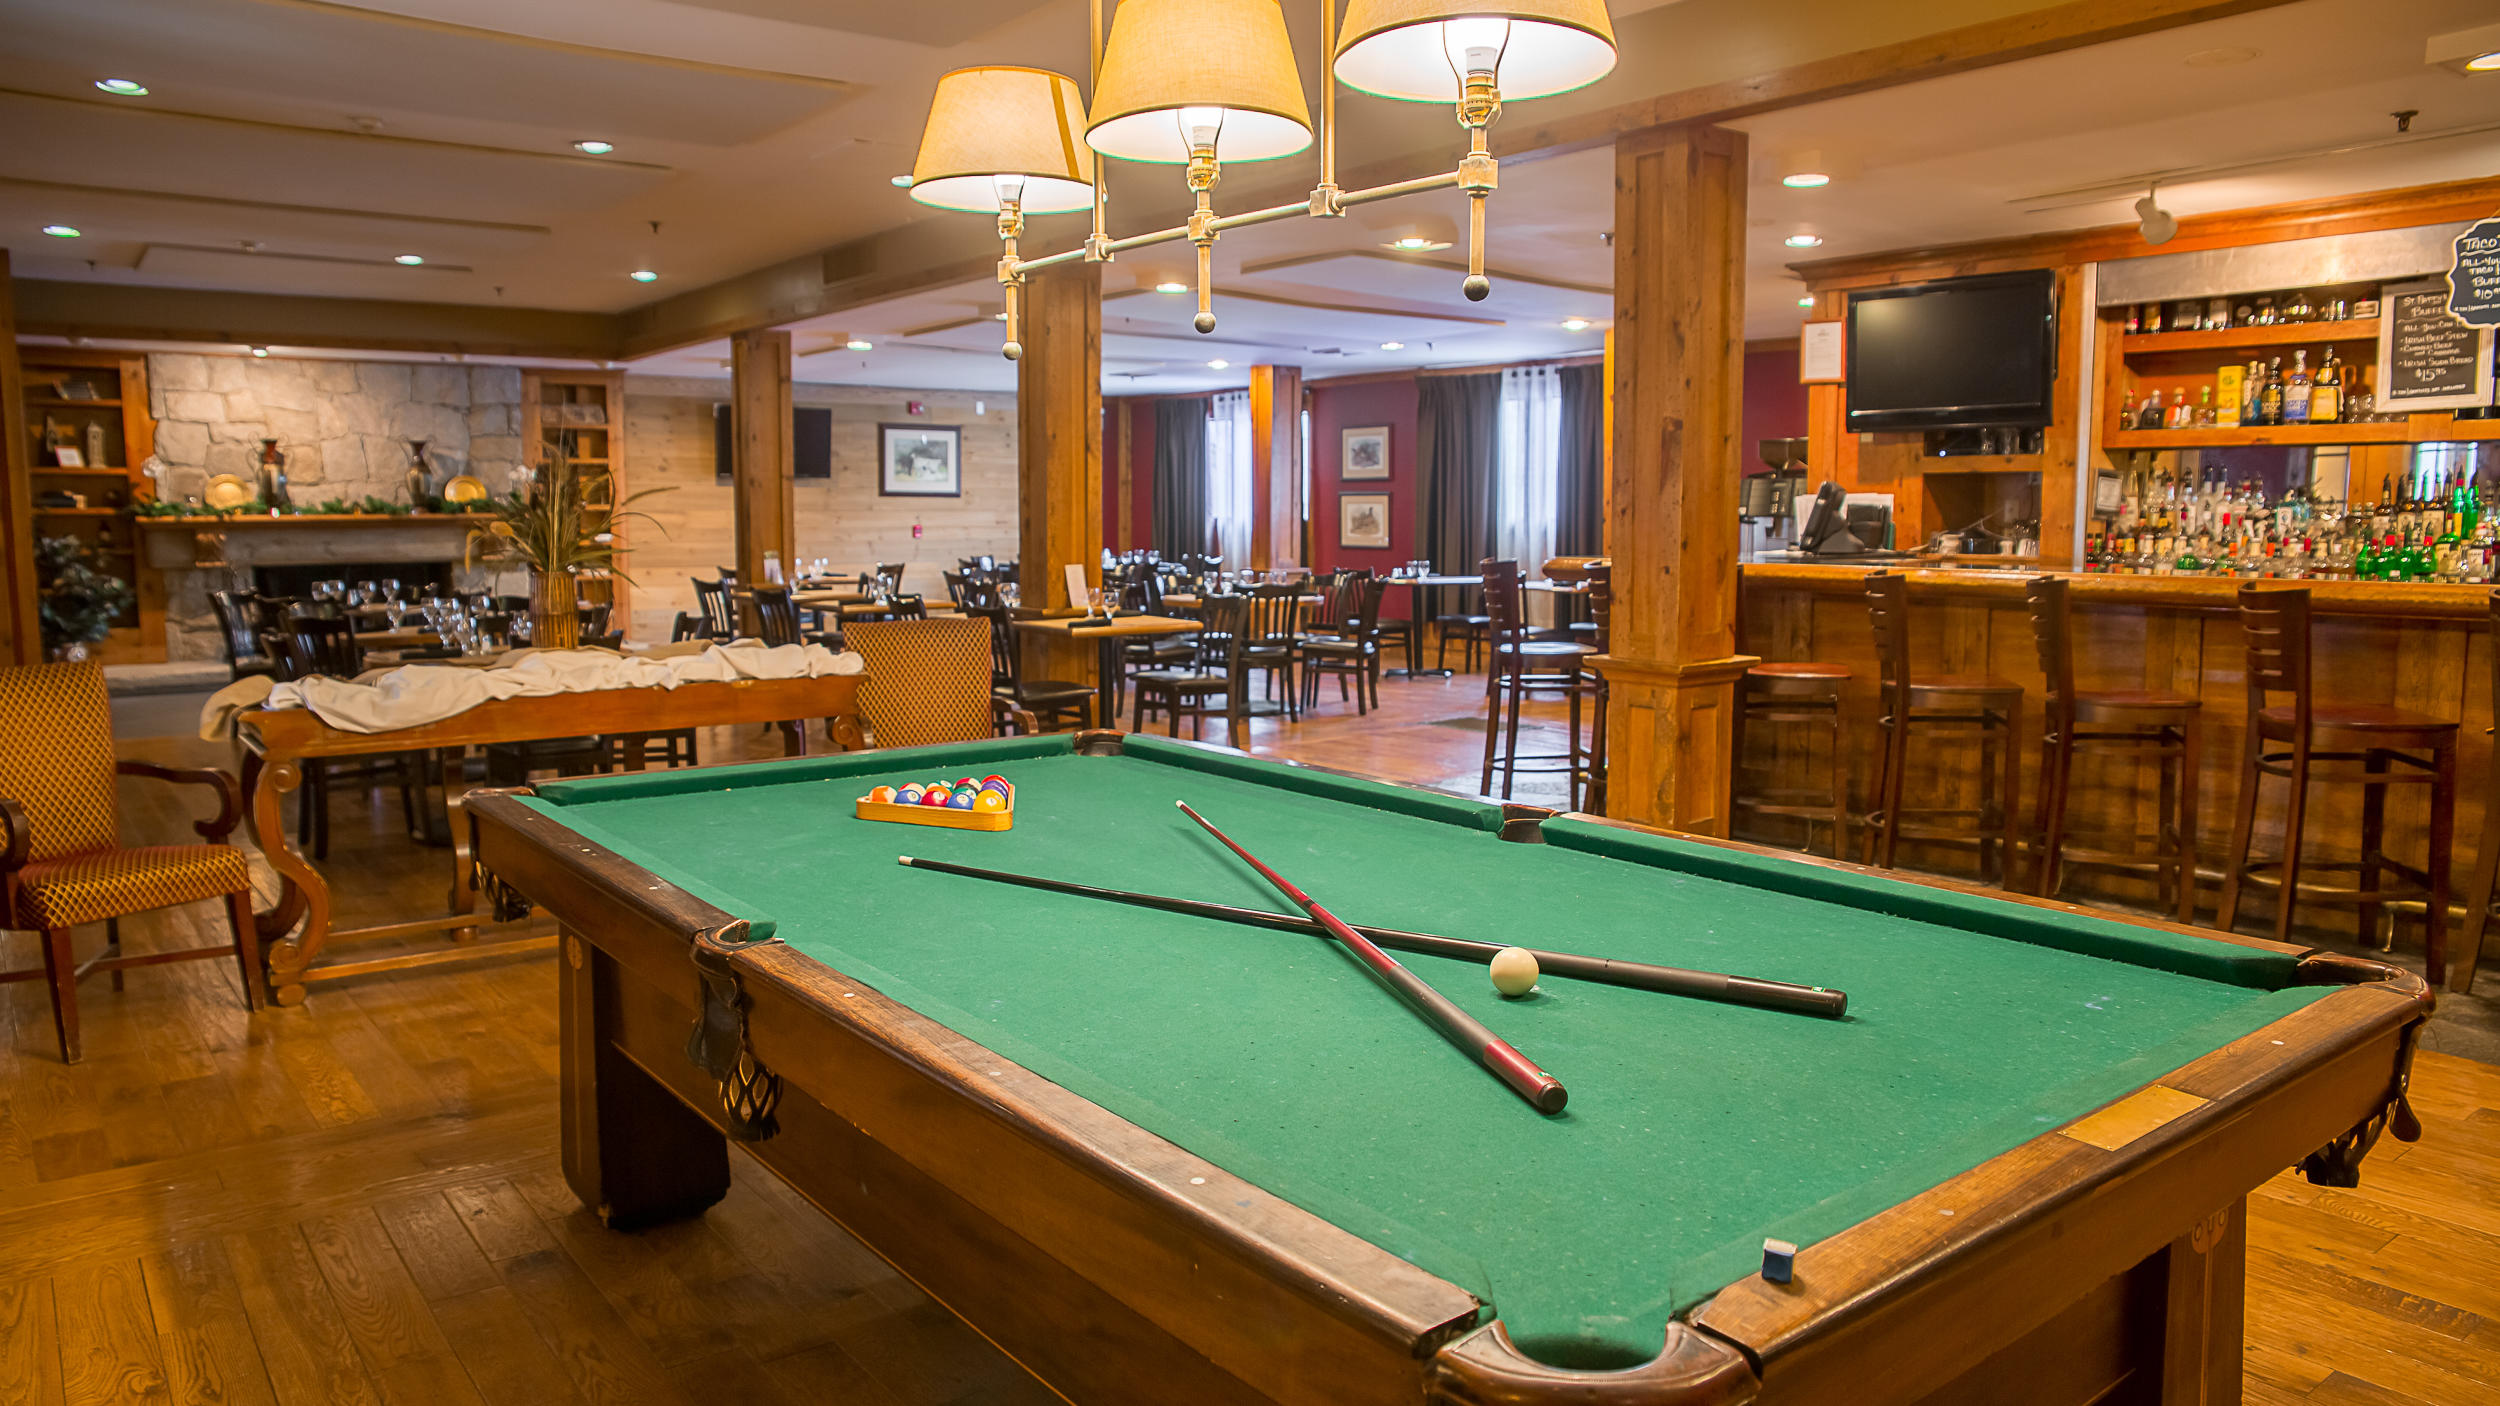 Billiards table at The Tavern